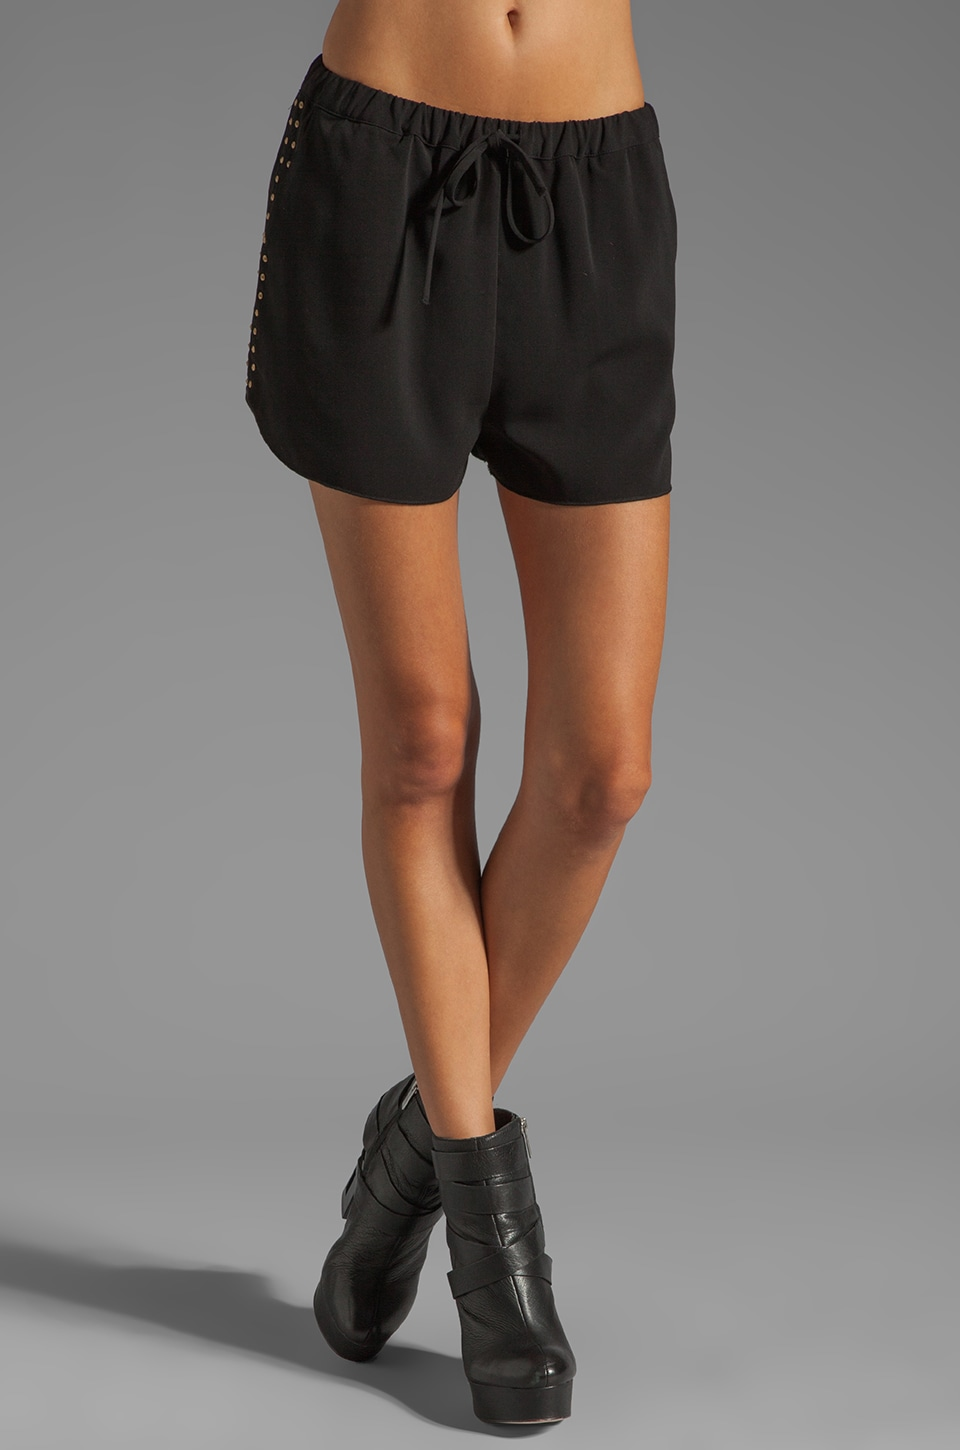 Lovers + Friends Adore Shorts in Black